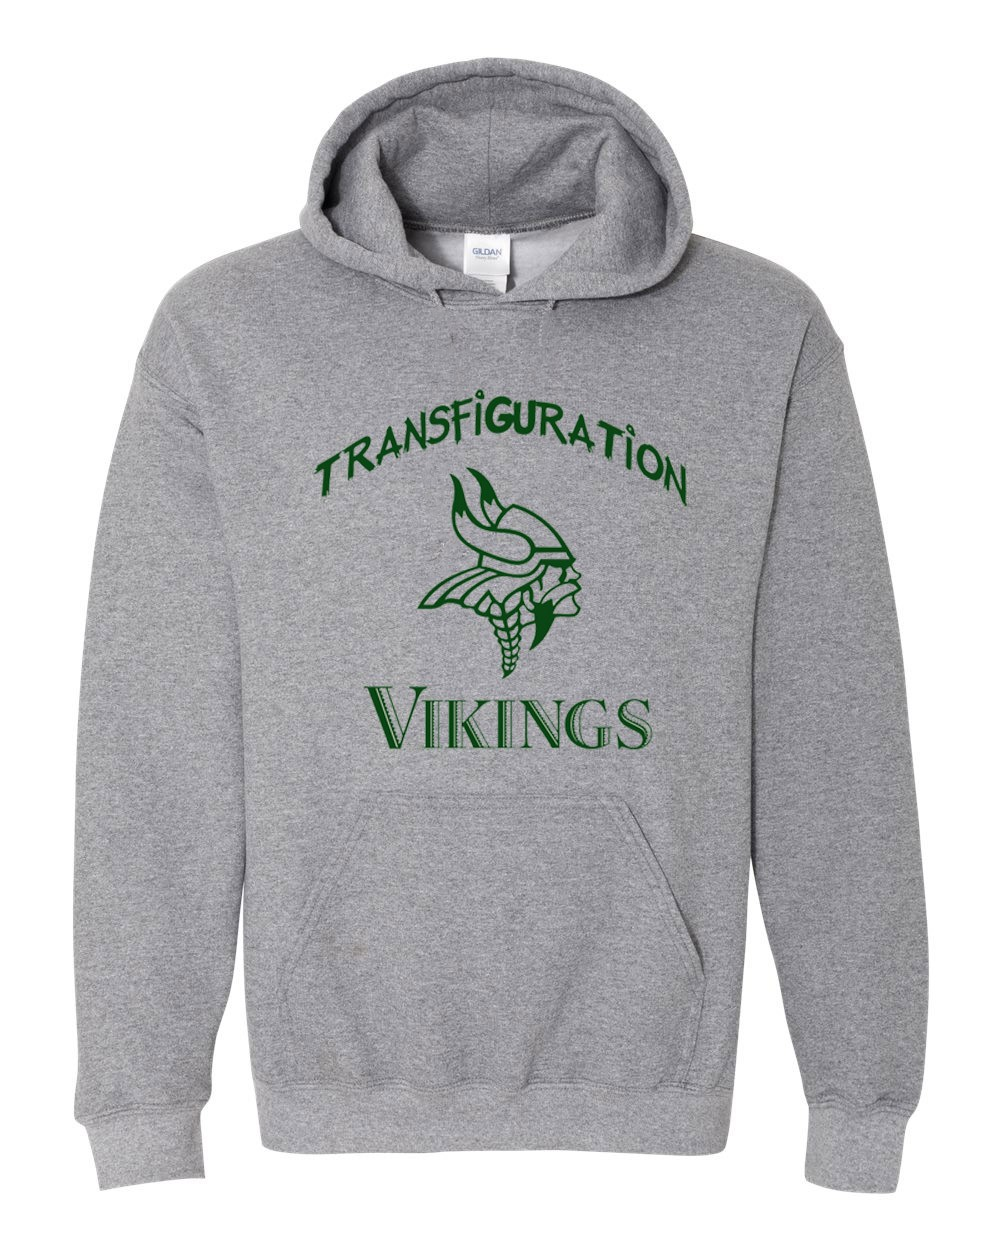 Transfiguration Spirit Wear Pullover Hoodie w/Logo - Please Allow 2-3 Weeks for Delivery